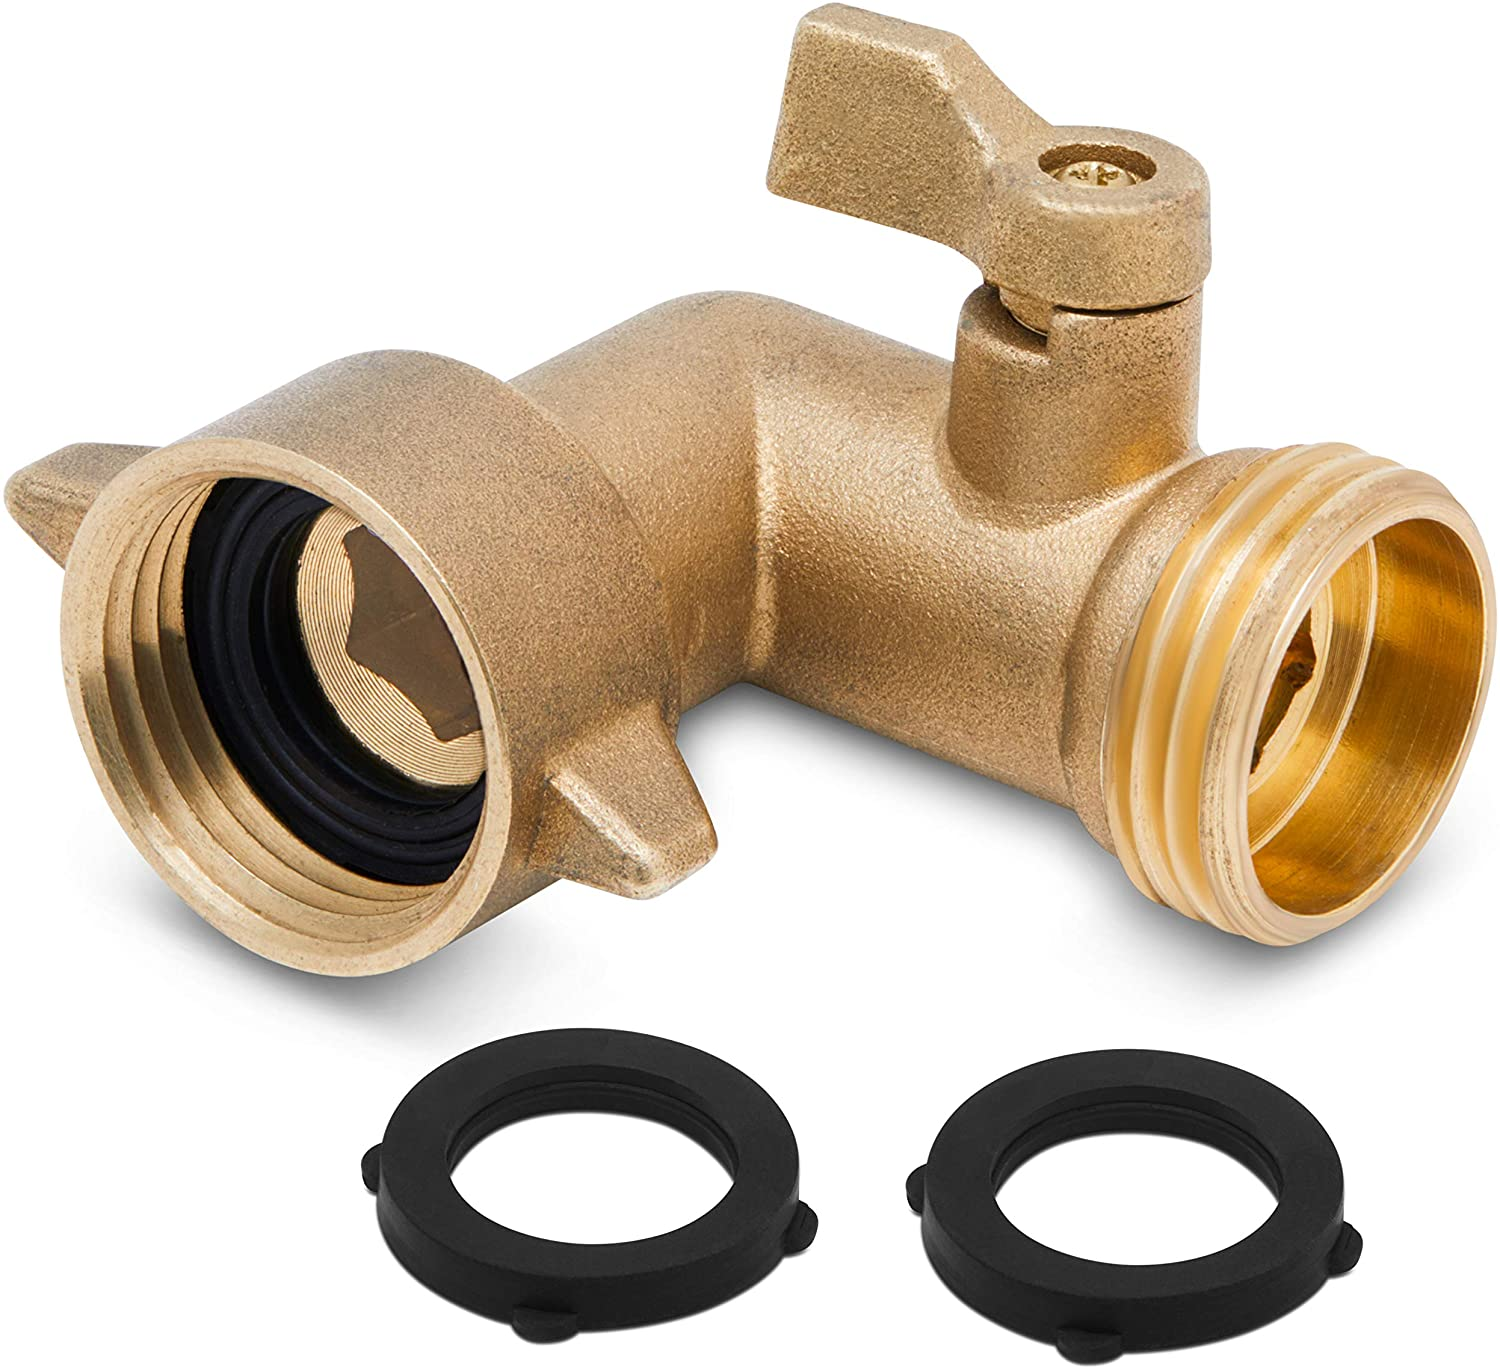 Morvat 90 Degree Garden Hose Elbow, RV Accessories for Outside Water Faucet, On/Off Valve, Solid Brass Fittings, Includes 2 Extra Rubber Washers